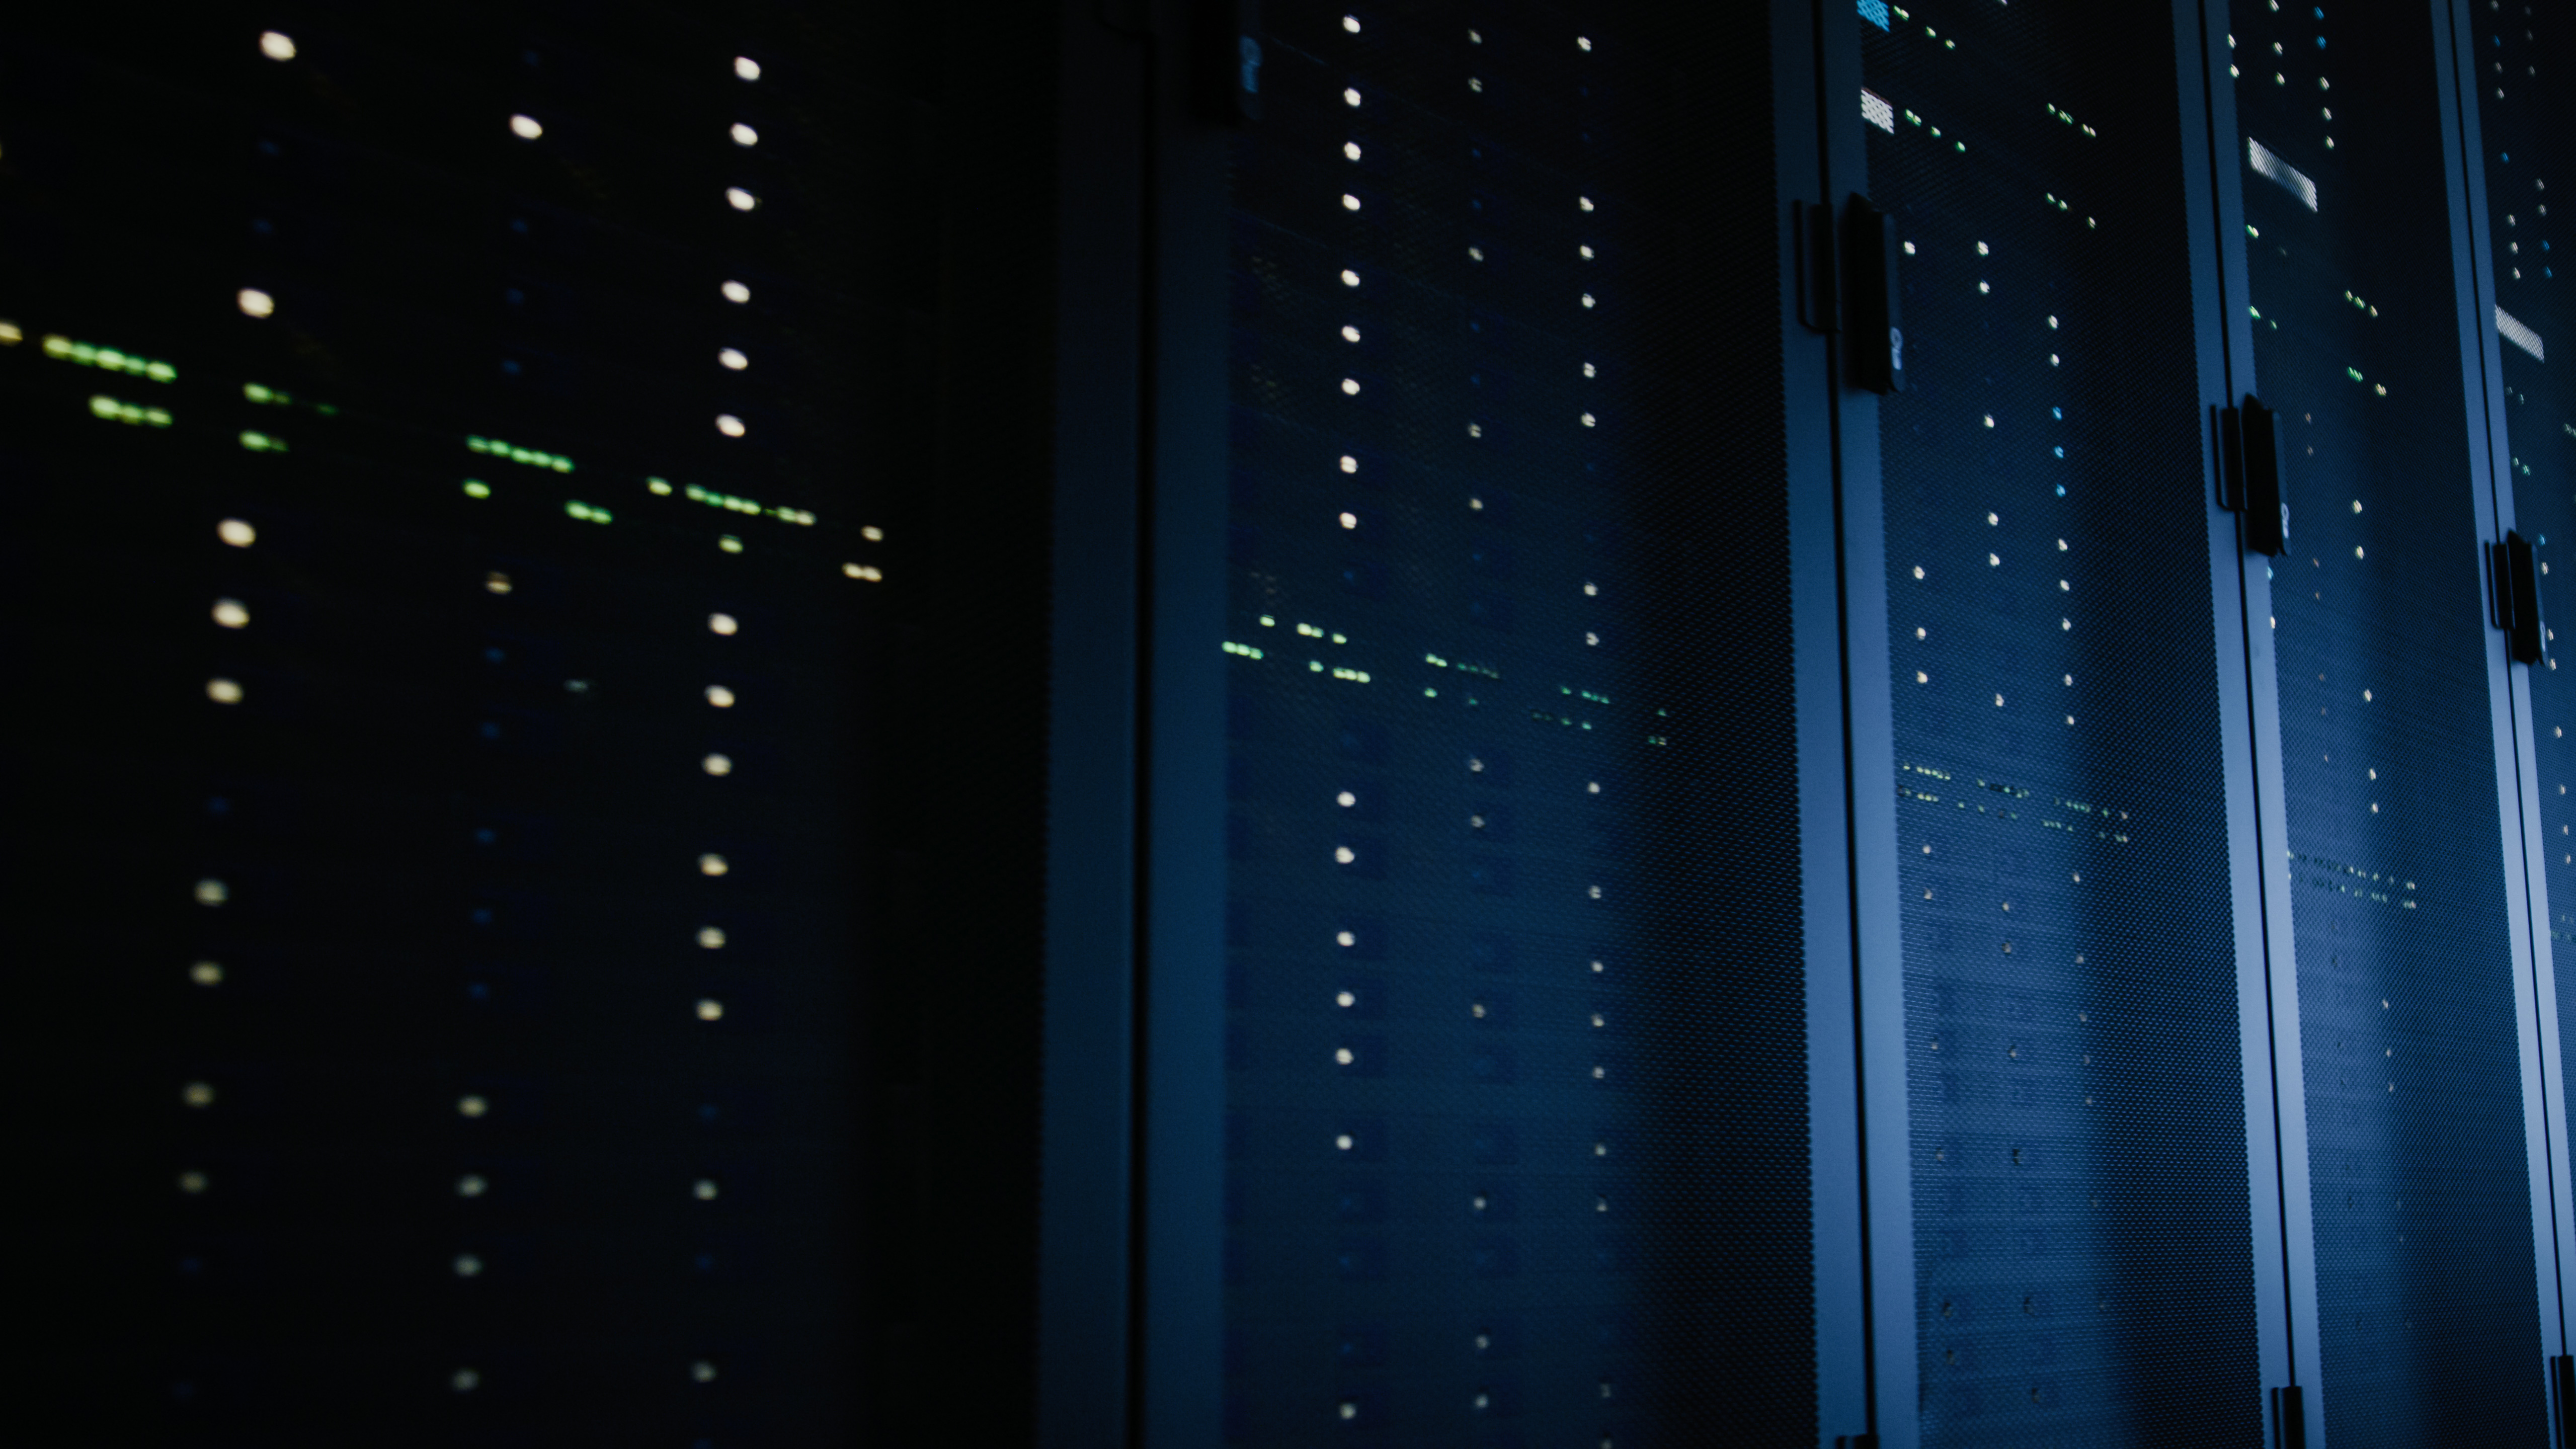 Close-Up Shot of Fully Operational Server Racks in Data Center. Modern Telecommunications, Cloud Computing, Artificial Intelligence, Database, Super Computer Technology Concept.